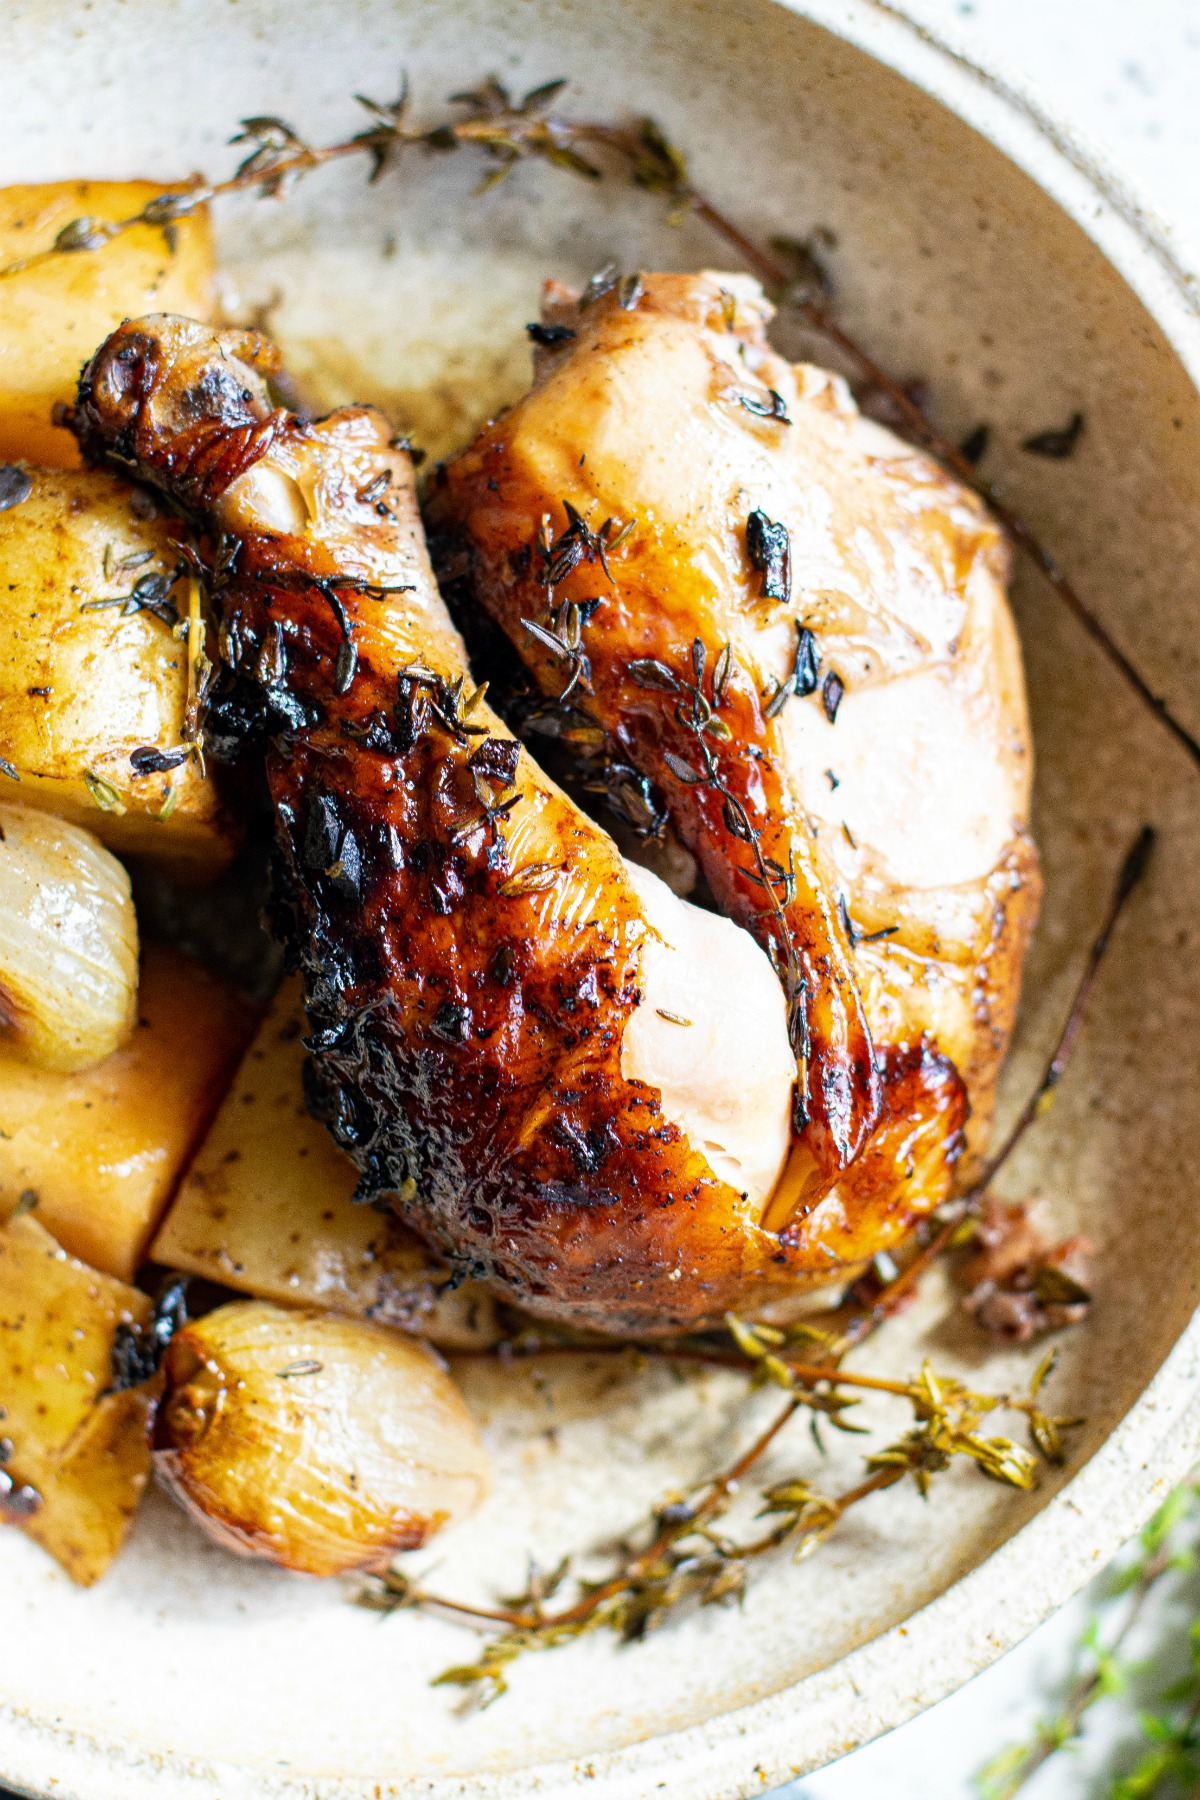 Balsamic chicken leg on plate with potatoes.